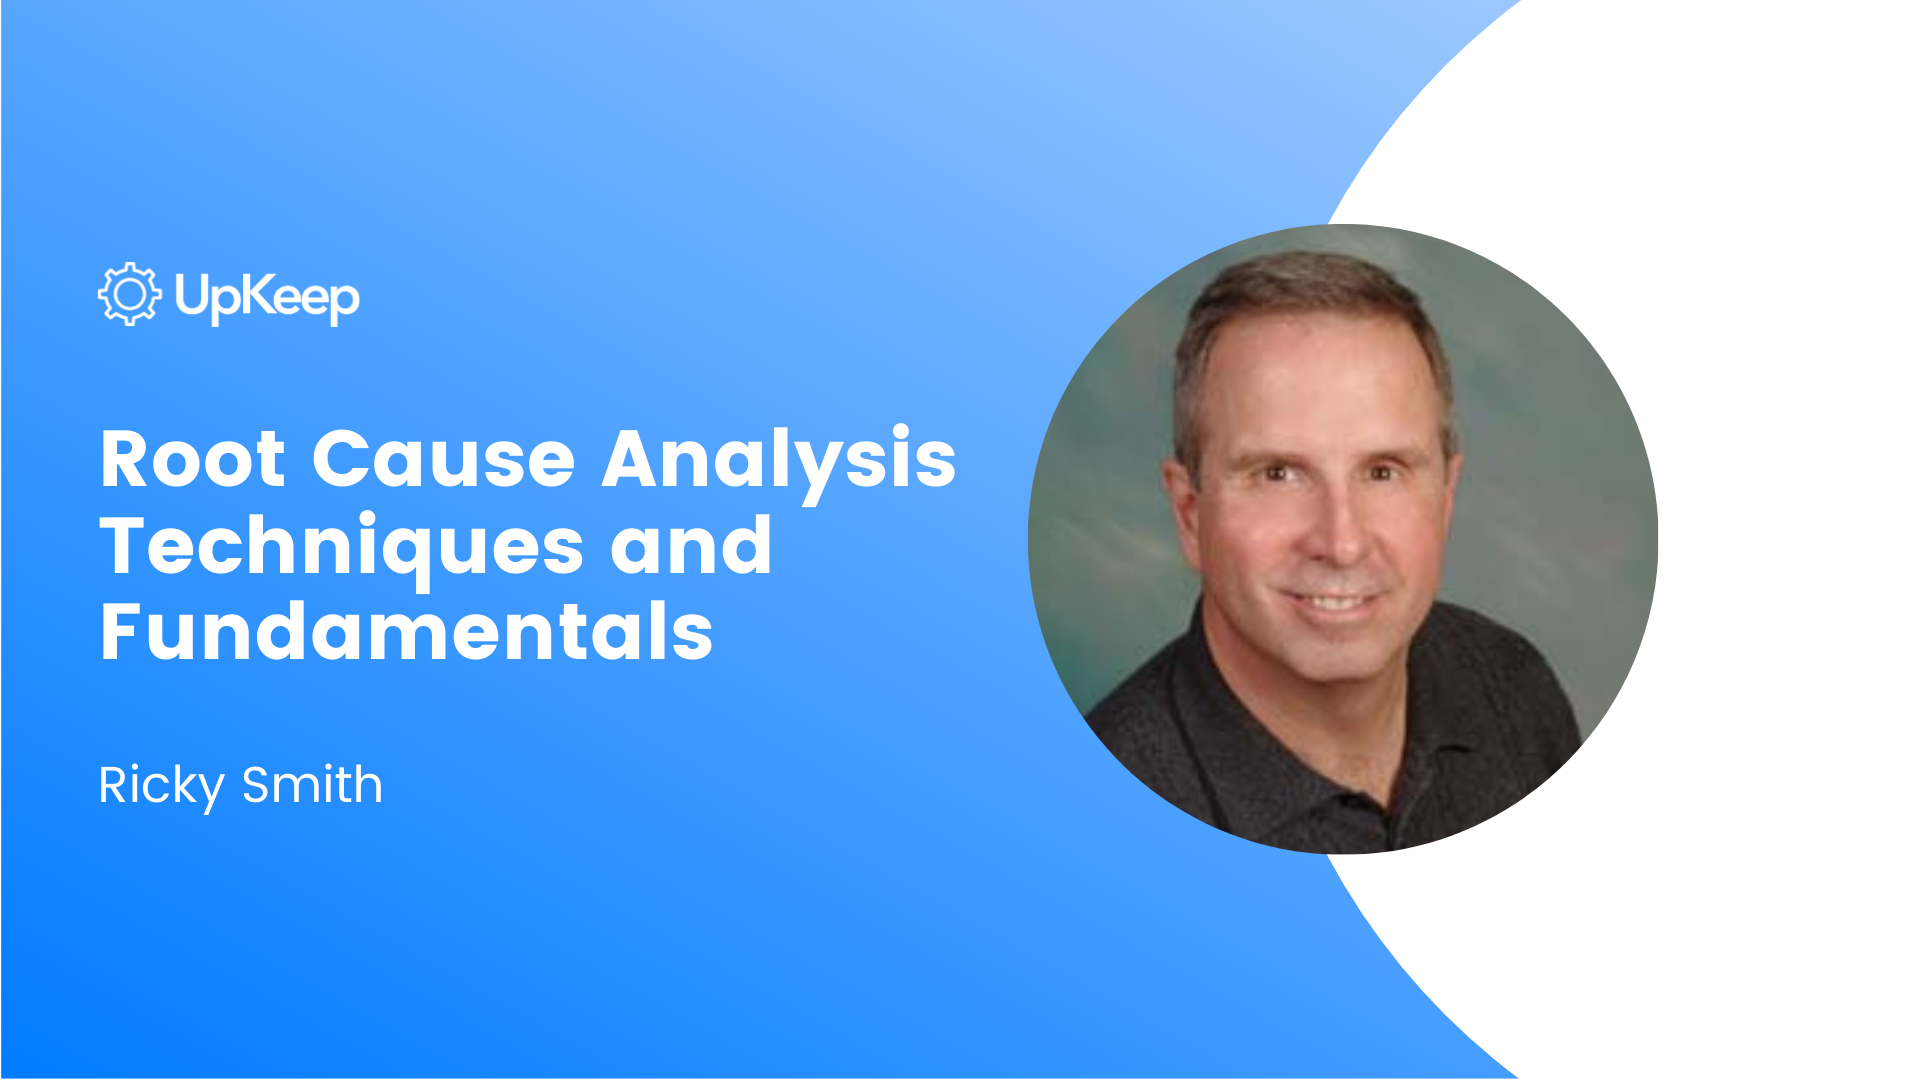 Root Cause Analysis Techniques and Fundamentals